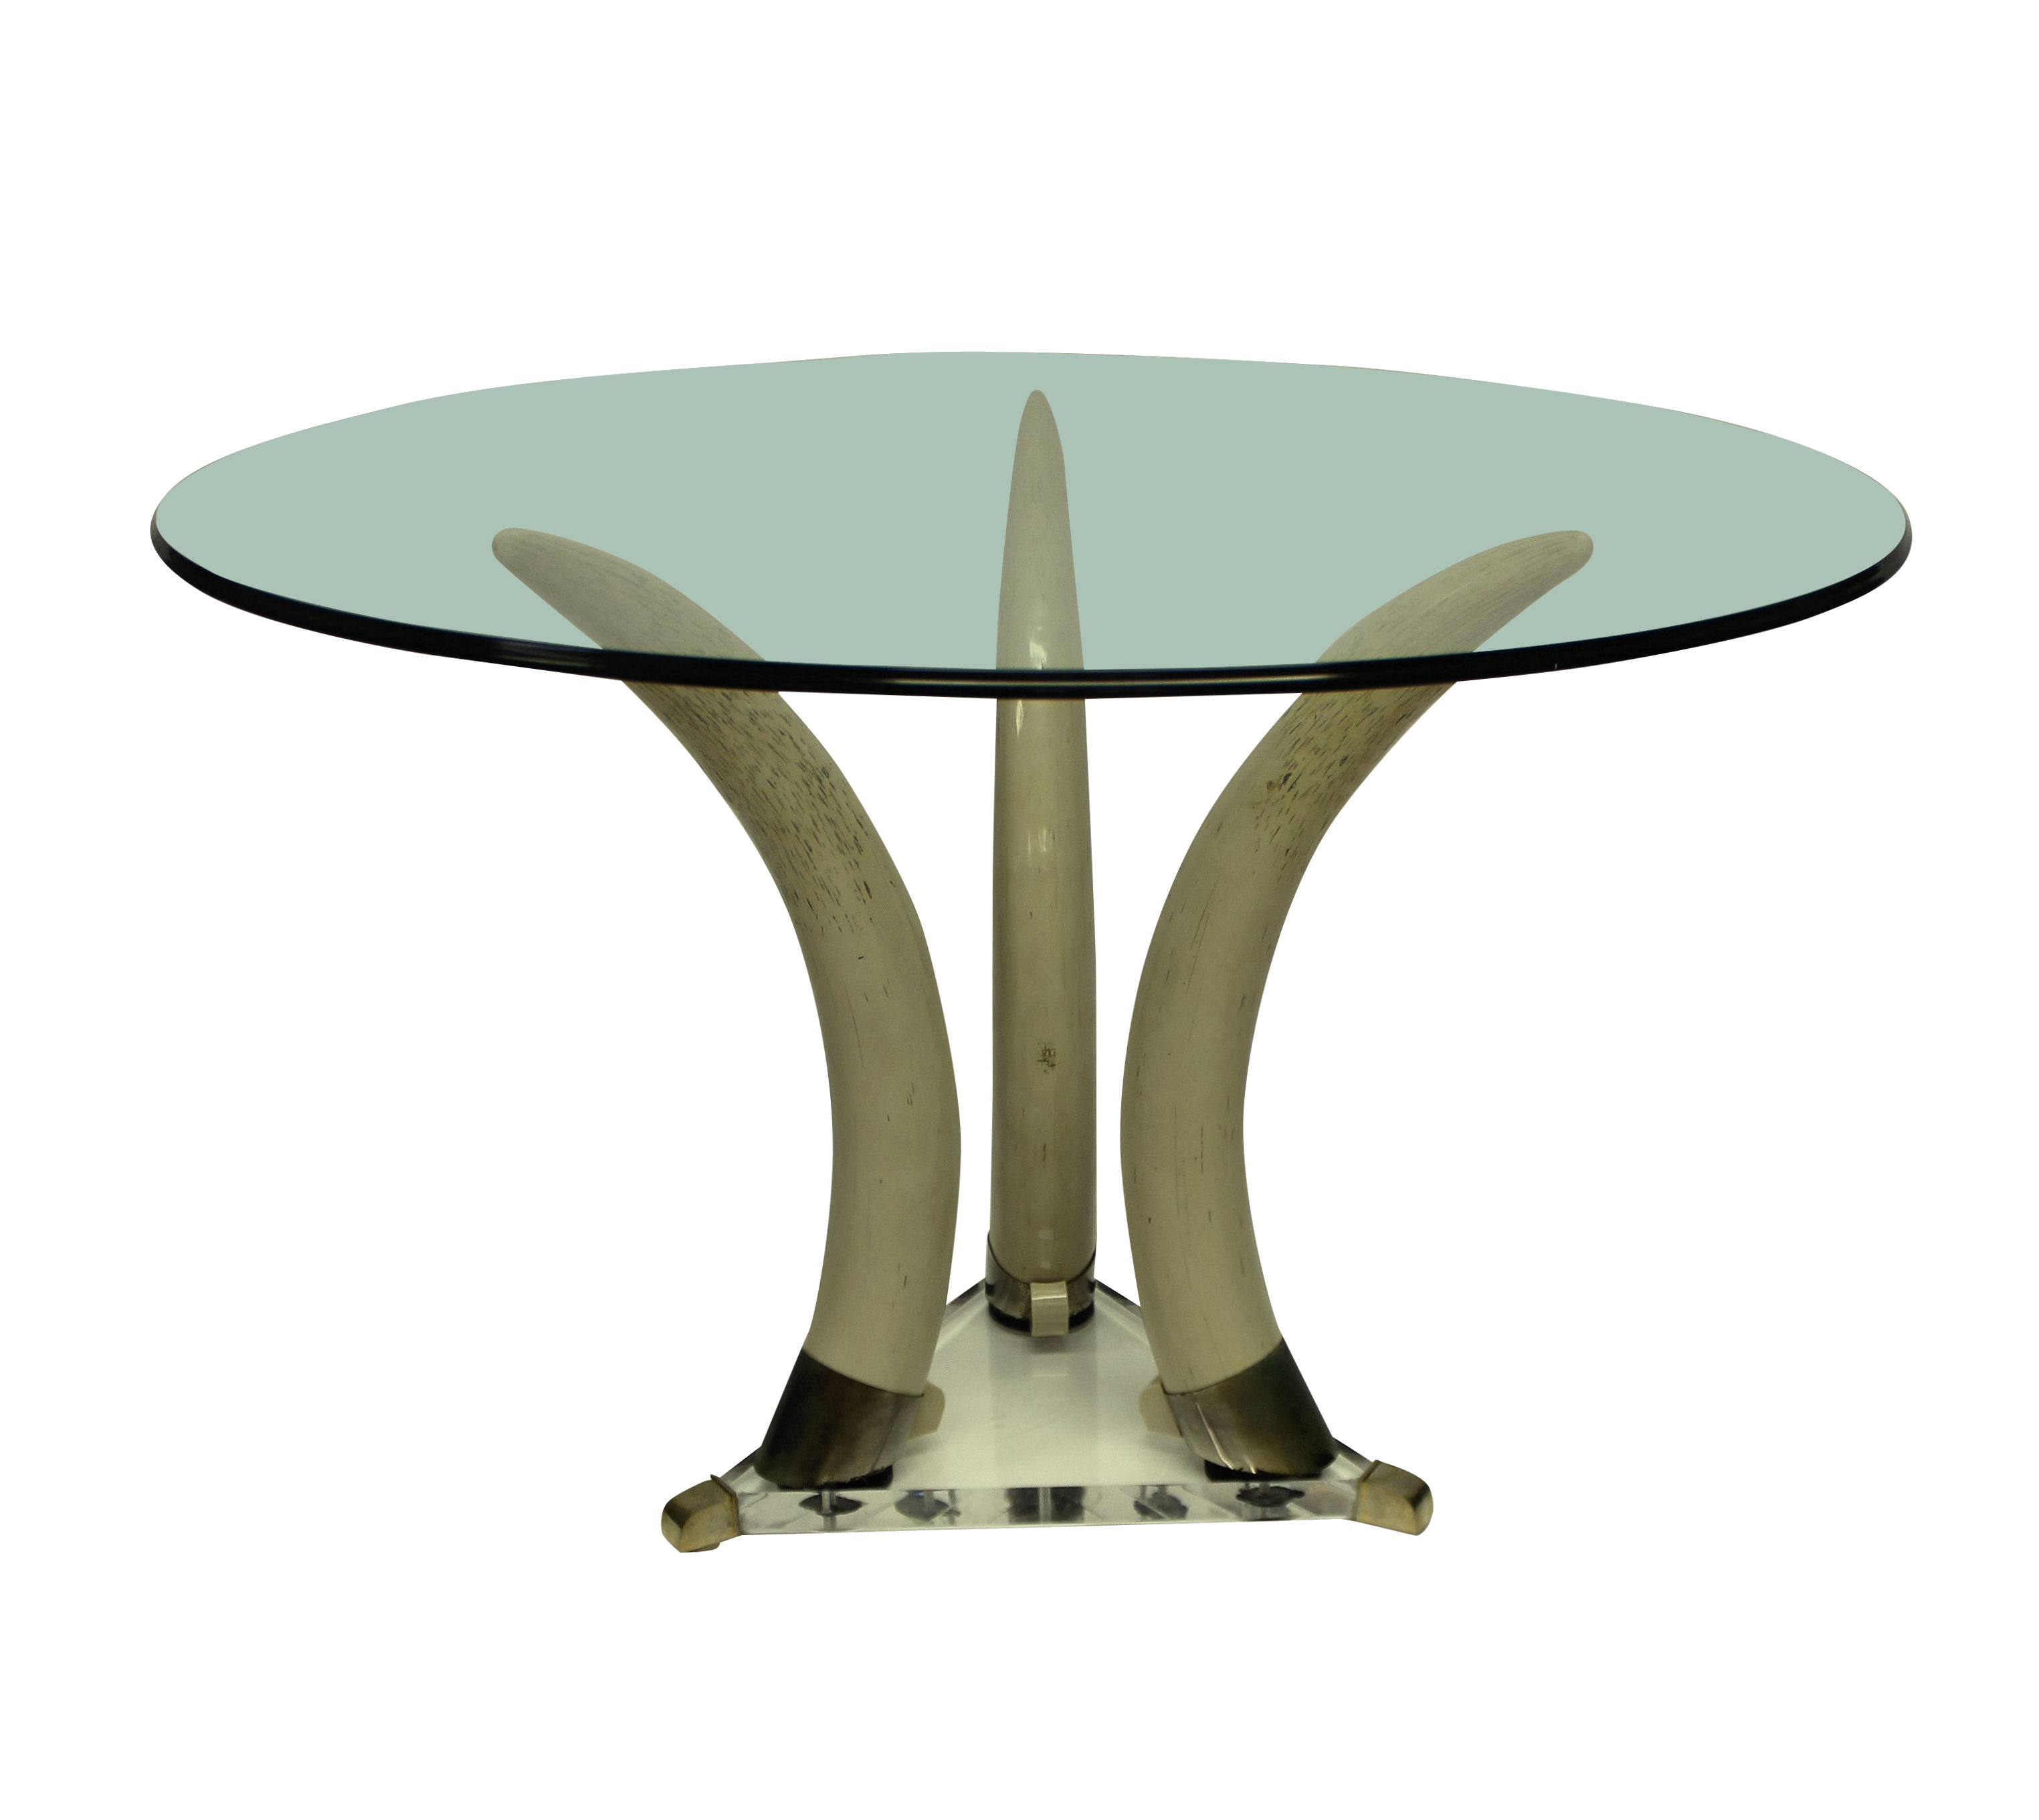 A MID-CENTURY FAUX TUSK CENTRE TABLE